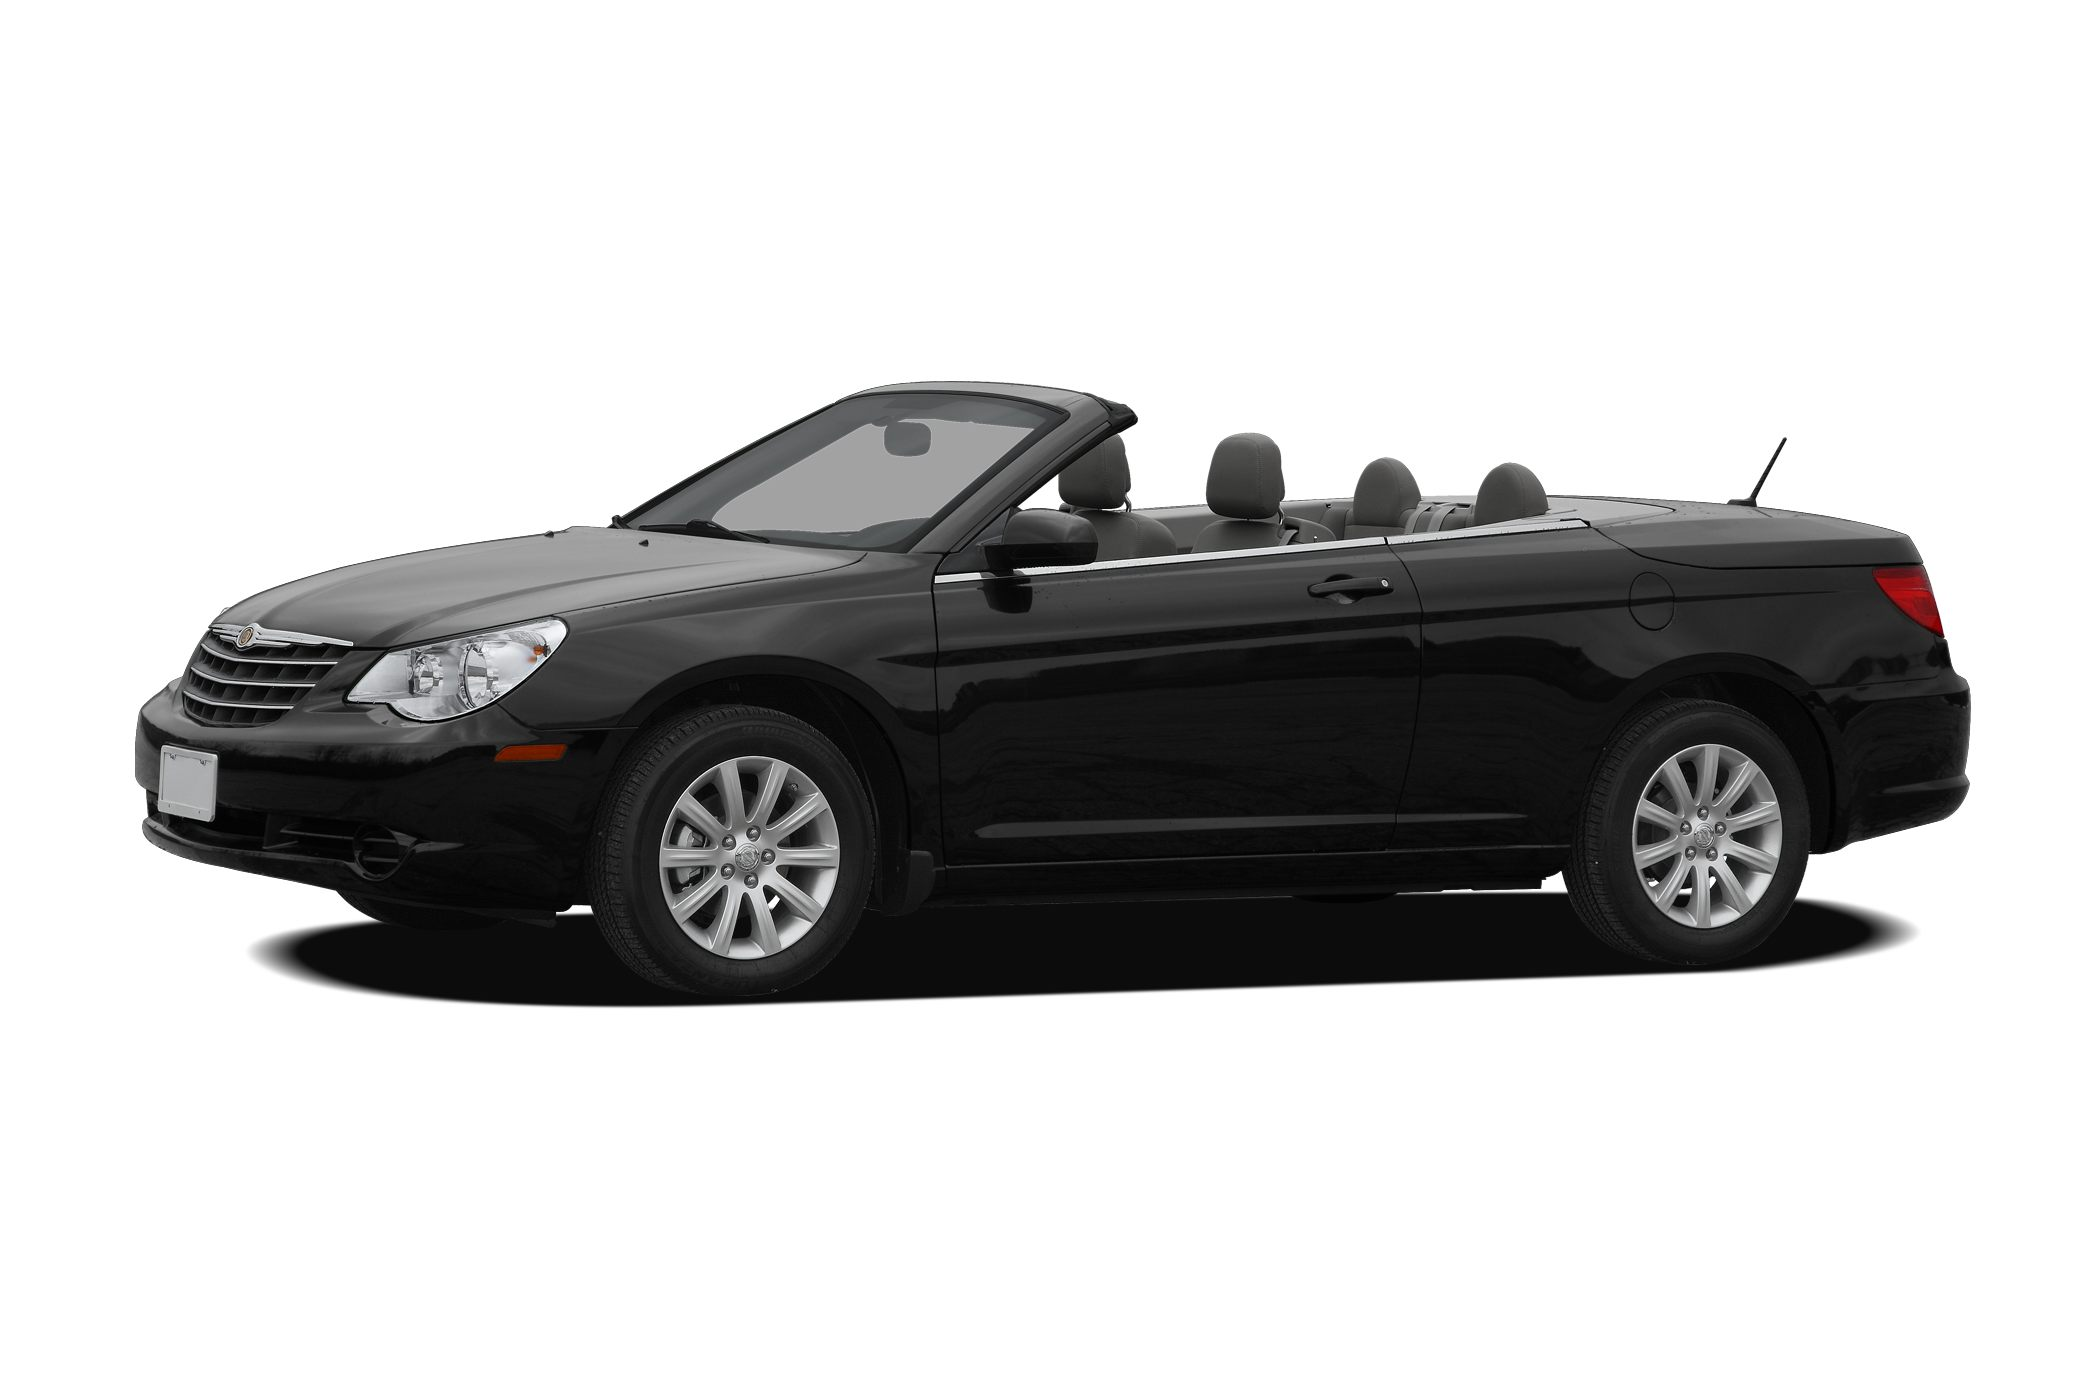 2008 Chrysler Sebring Limited Convertible for sale in Little Rock for $12,900 with 51,000 miles.